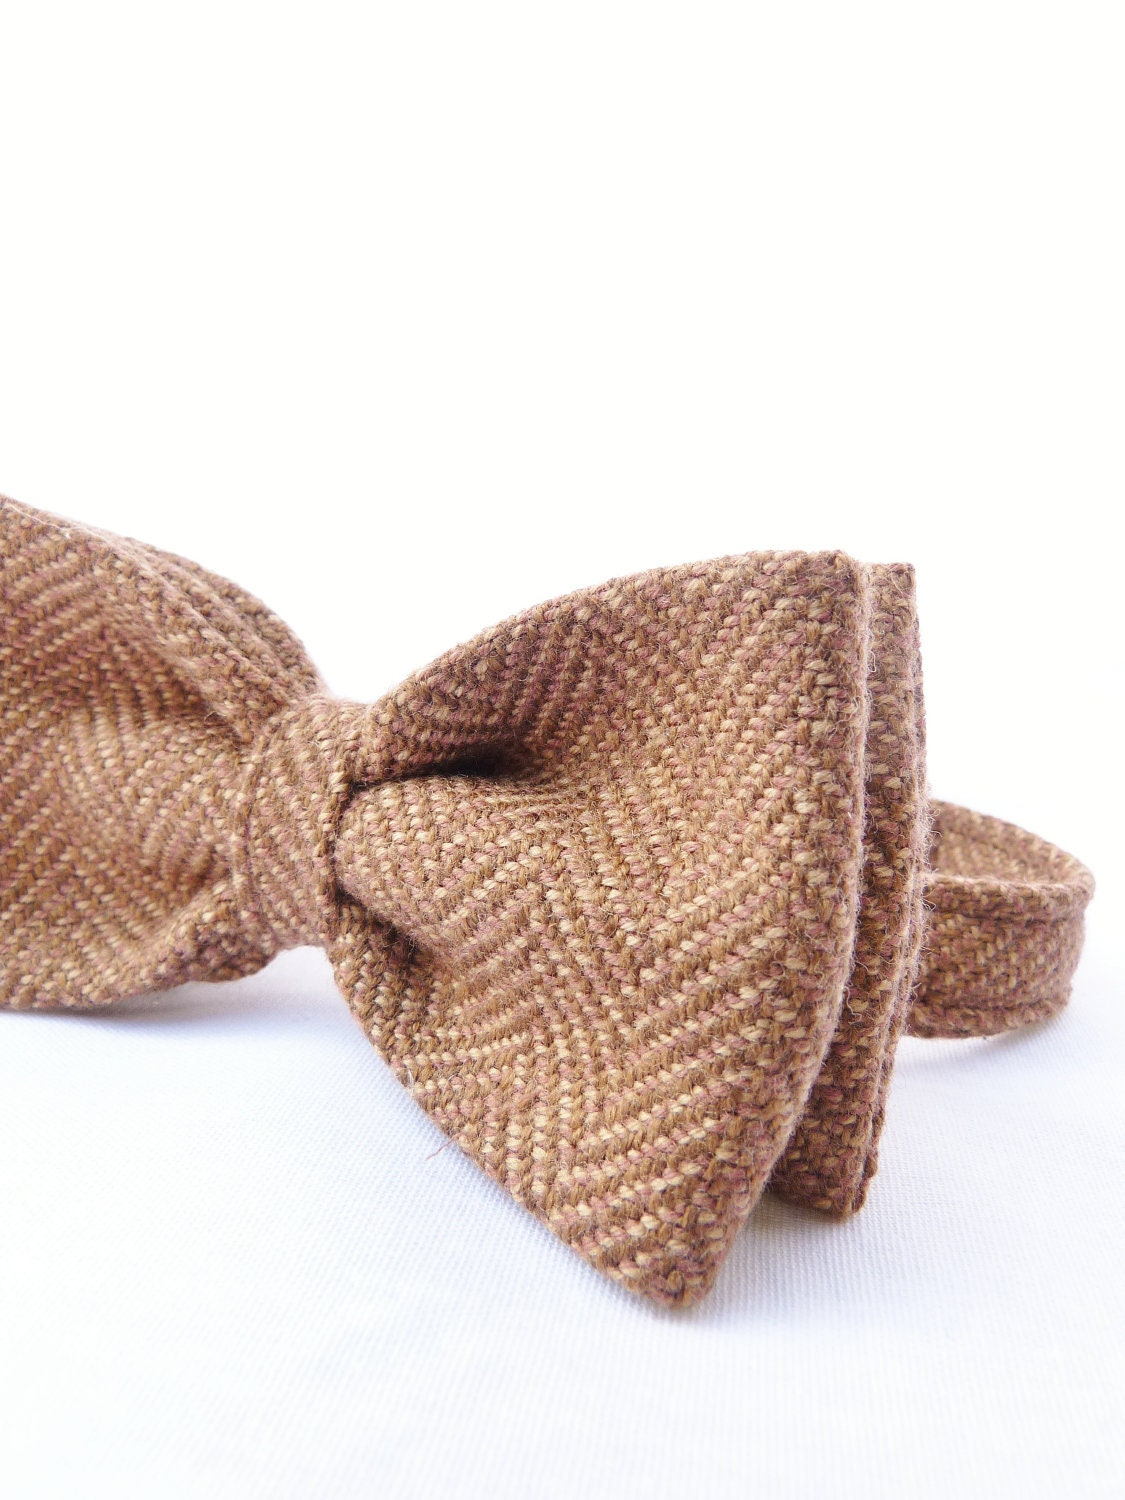 Mens Bow Tie - Cocoa Brown Irish Herringbone Tweed